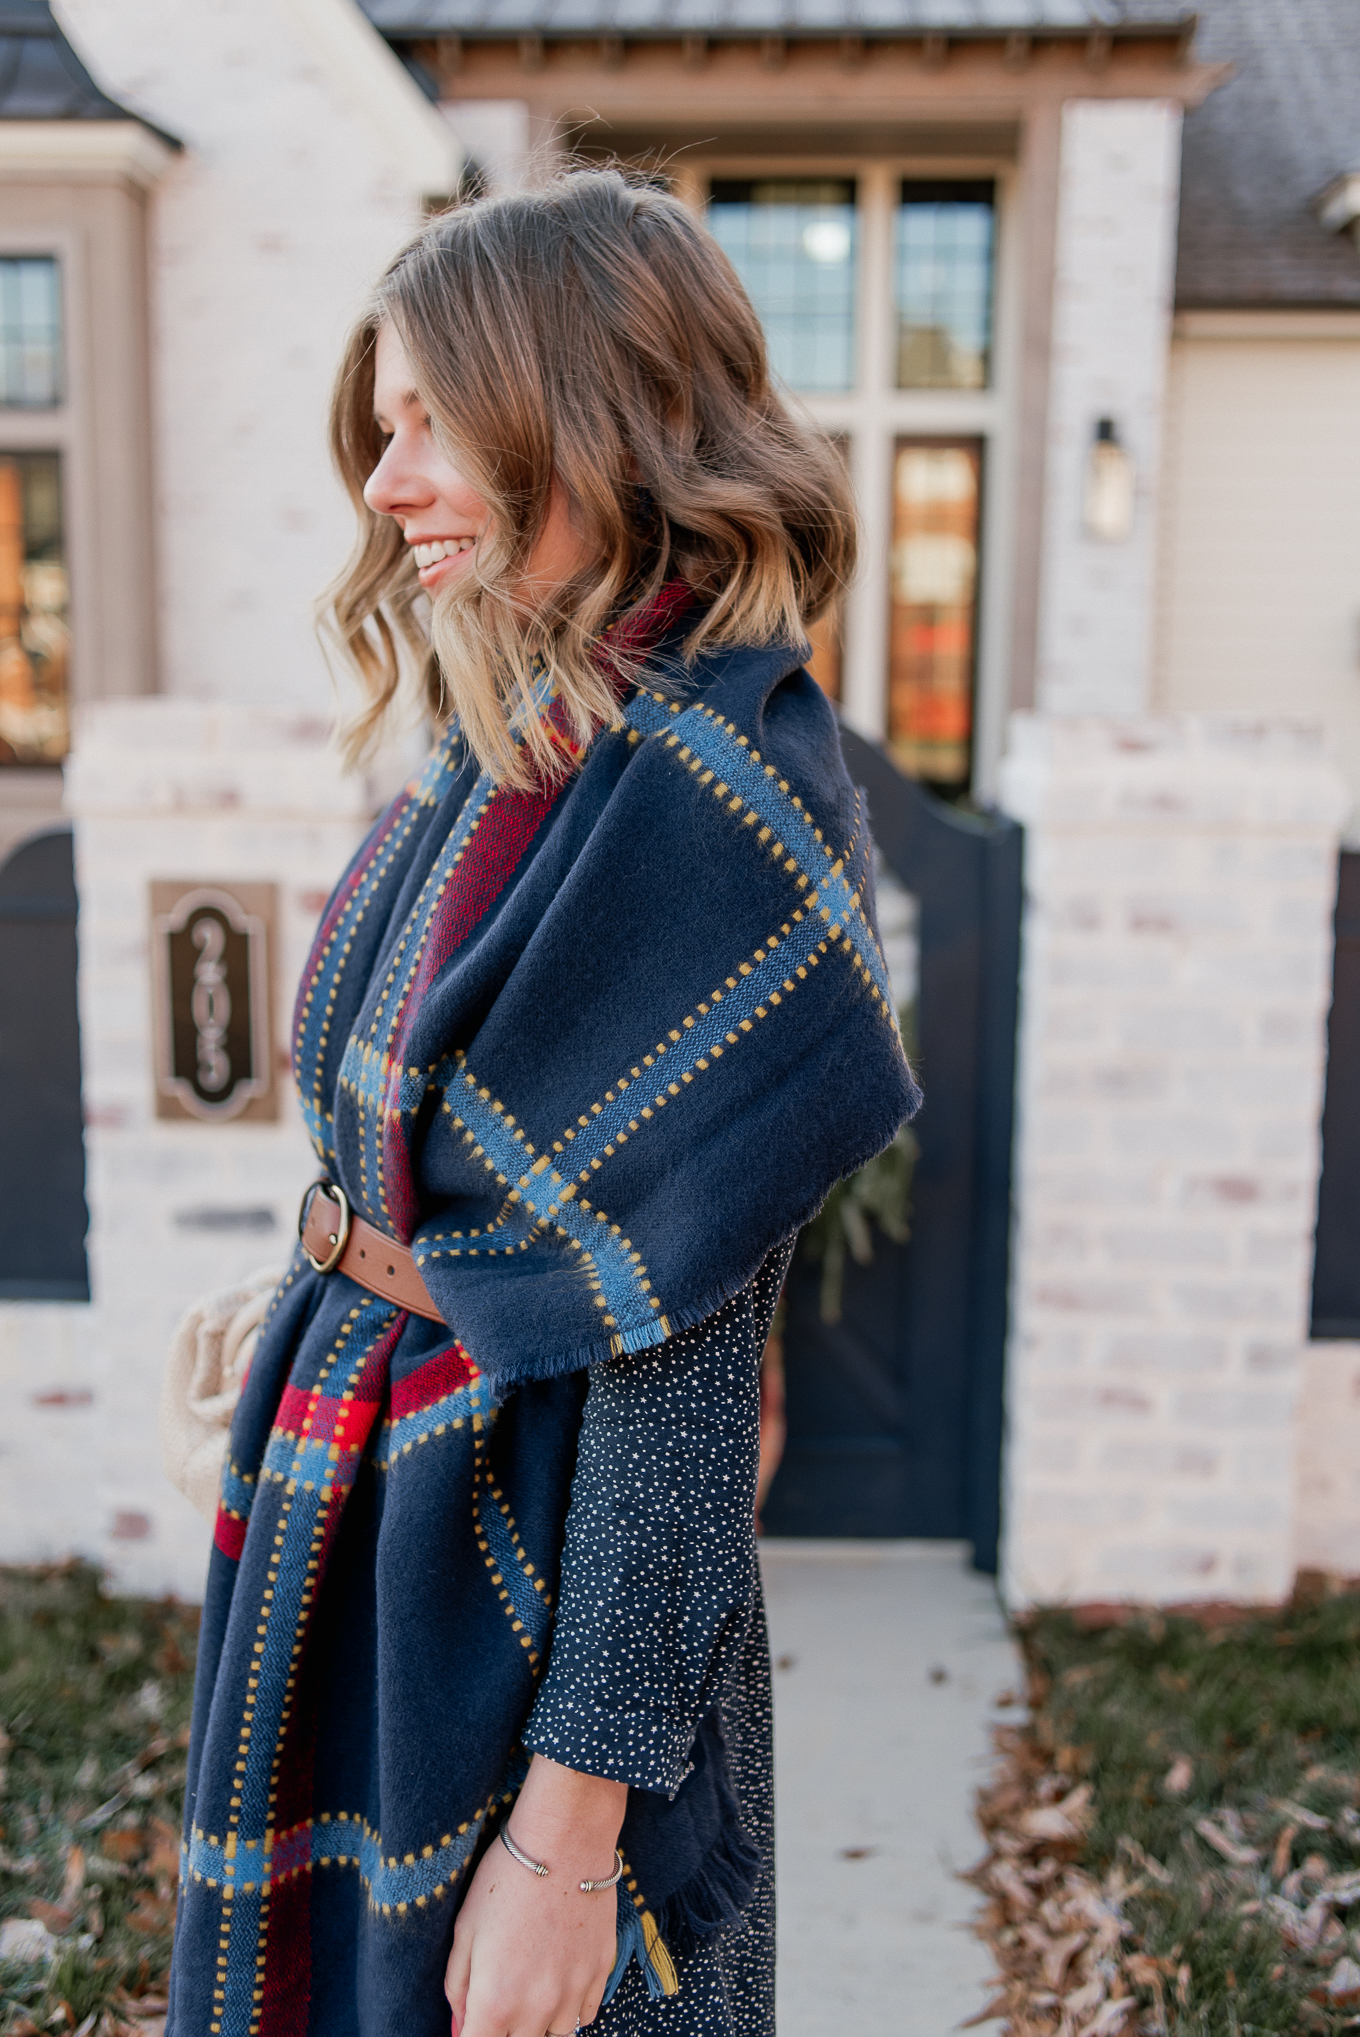 Laura Leigh of Louella Reese shares how to style a scarf as vest this winter season #styletip #scarfvest #winterstyle